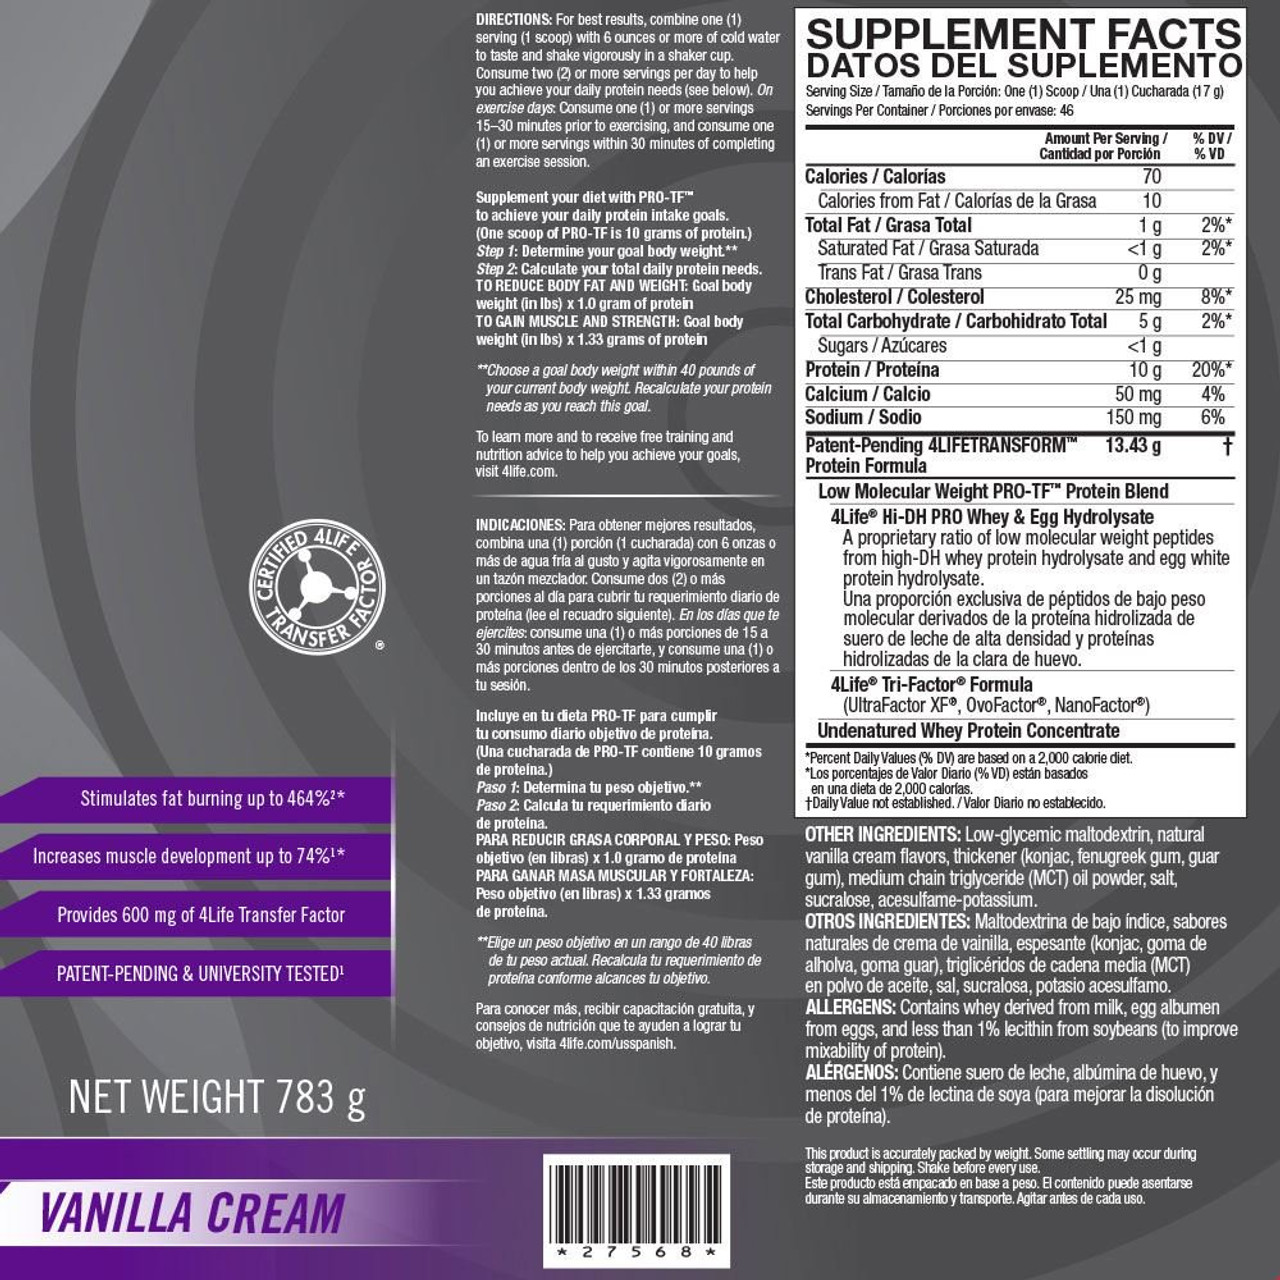 PRO-TF Powder Vanilla - 46 Servings